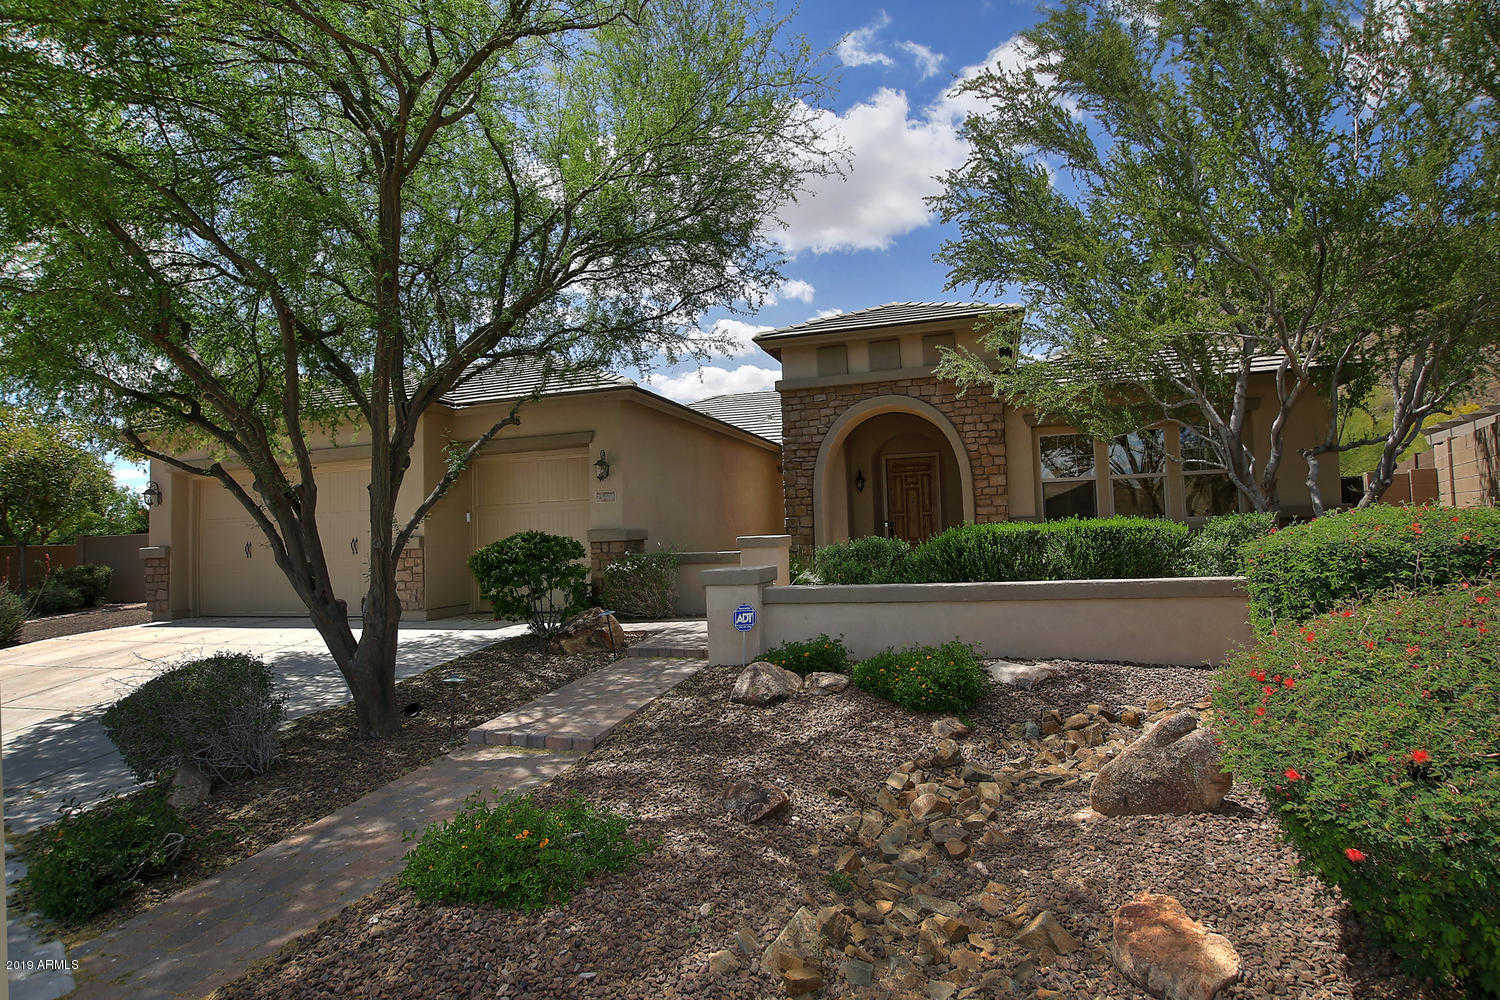 $612,000 - 4Br/4Ba - Home for Sale in Stetson Valley Parcels 5 13 14, Phoenix